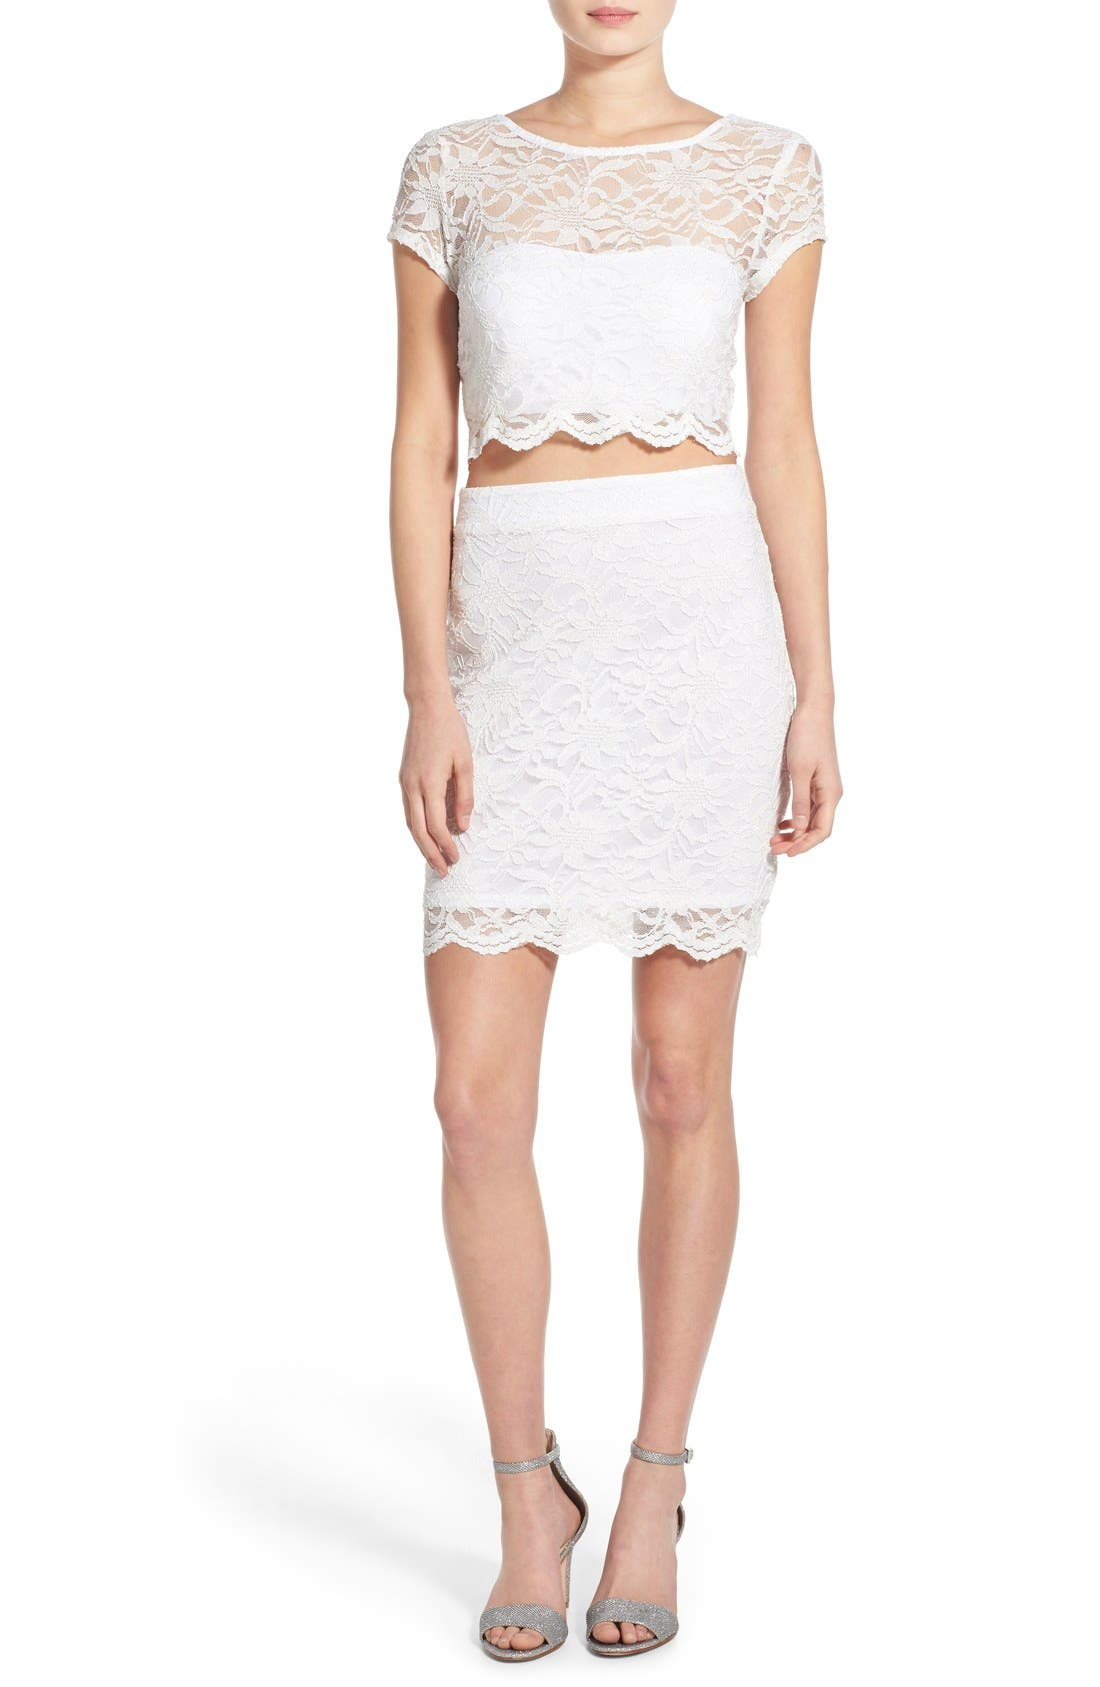 Alternate Image 1 Selected - Speechless Glitter Lace Two-Piece Sheath Dress